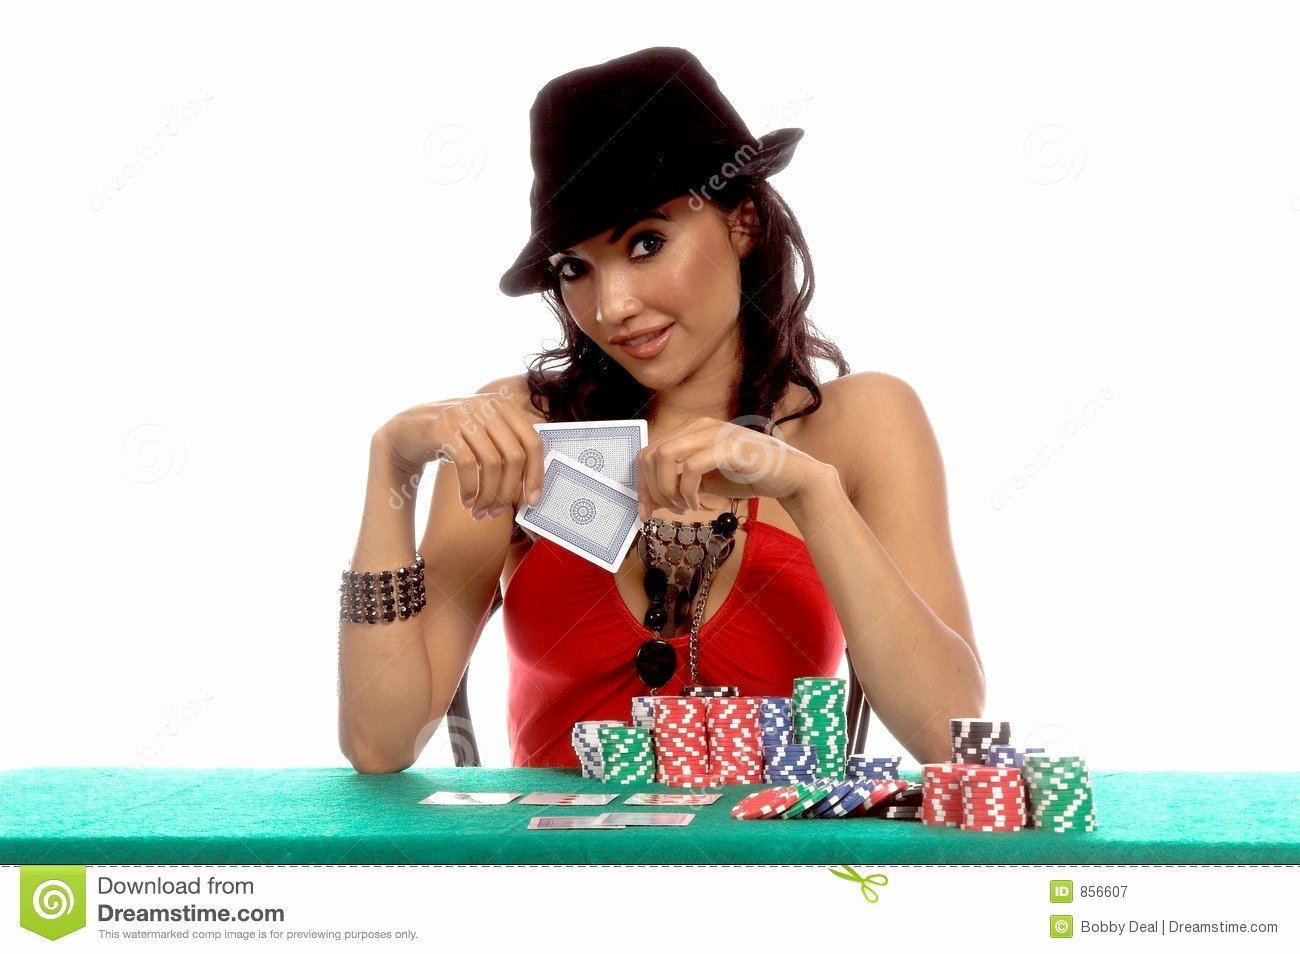 Free Sexy Women Photos Elegant Poker Player Stock Image Image Of Texas Girl Haired